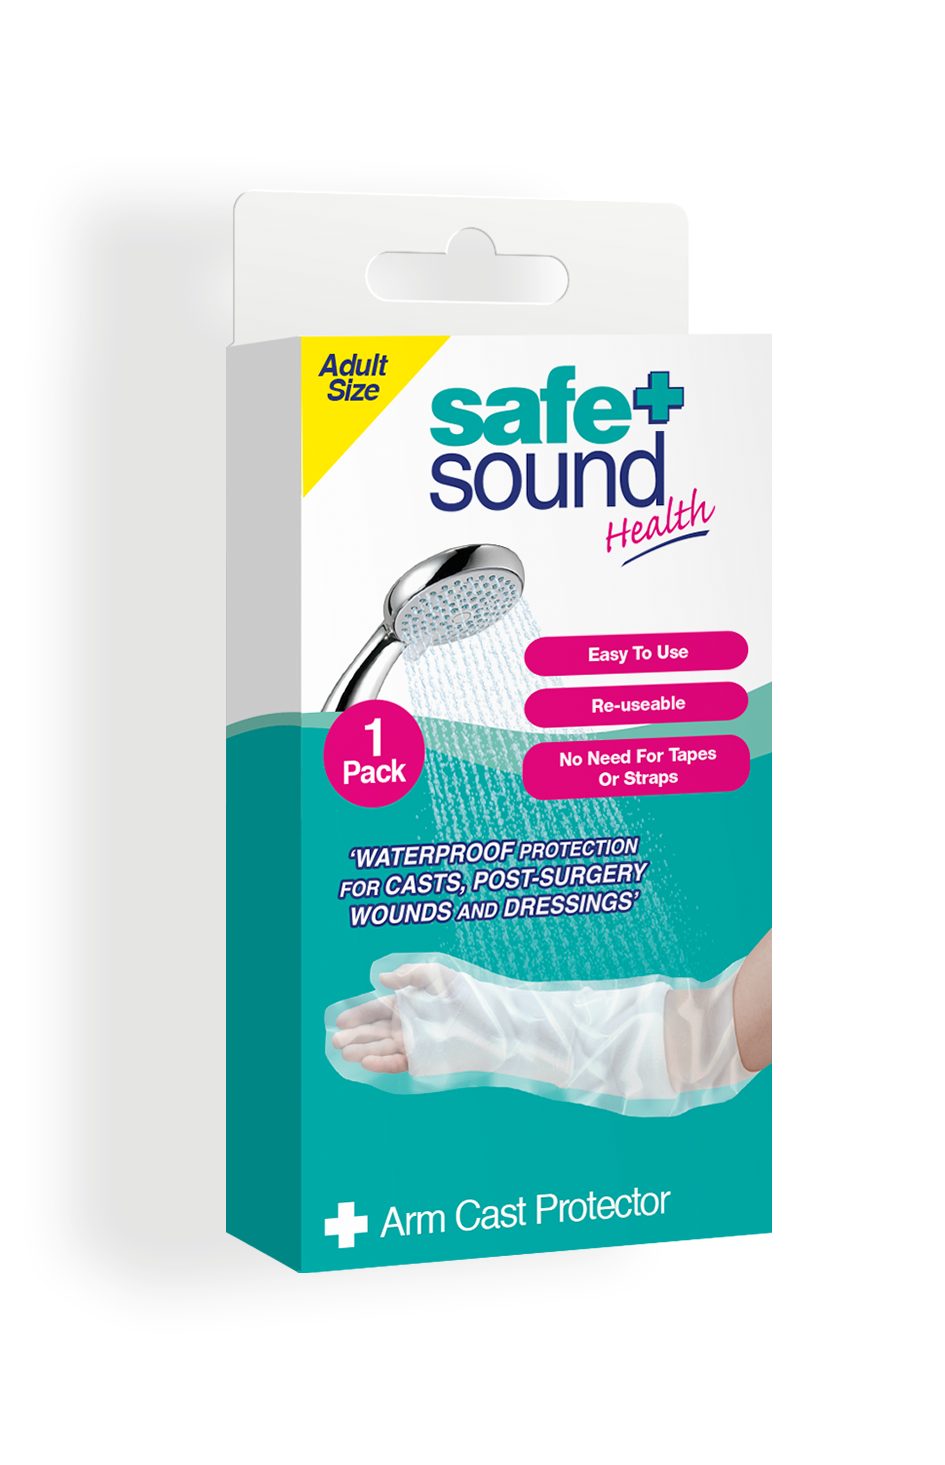 Safe and Sound Health Waterproof Arm Cast Protector